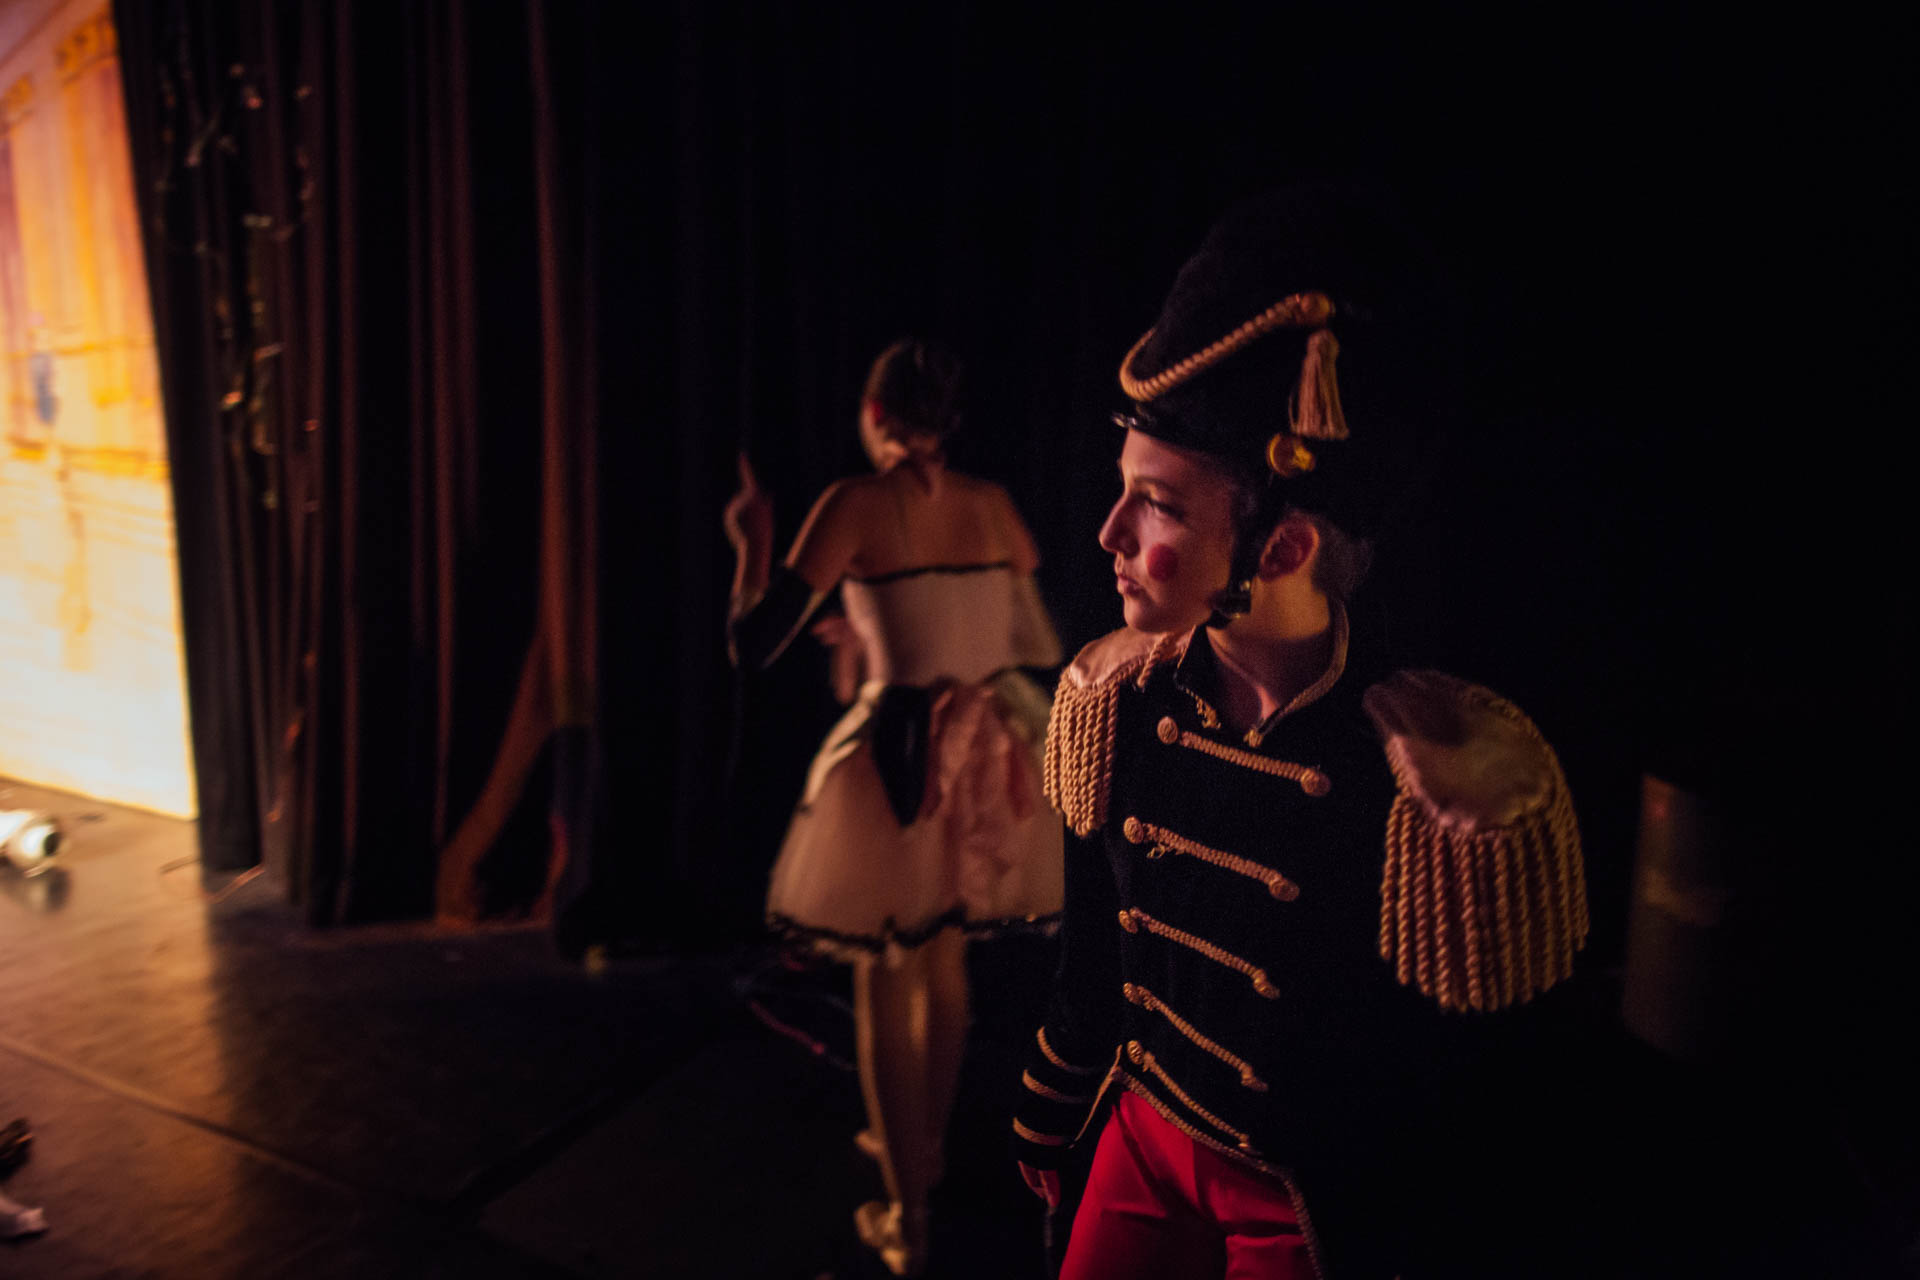 nutcracker-ballet-toy-soldier-backstage-5604